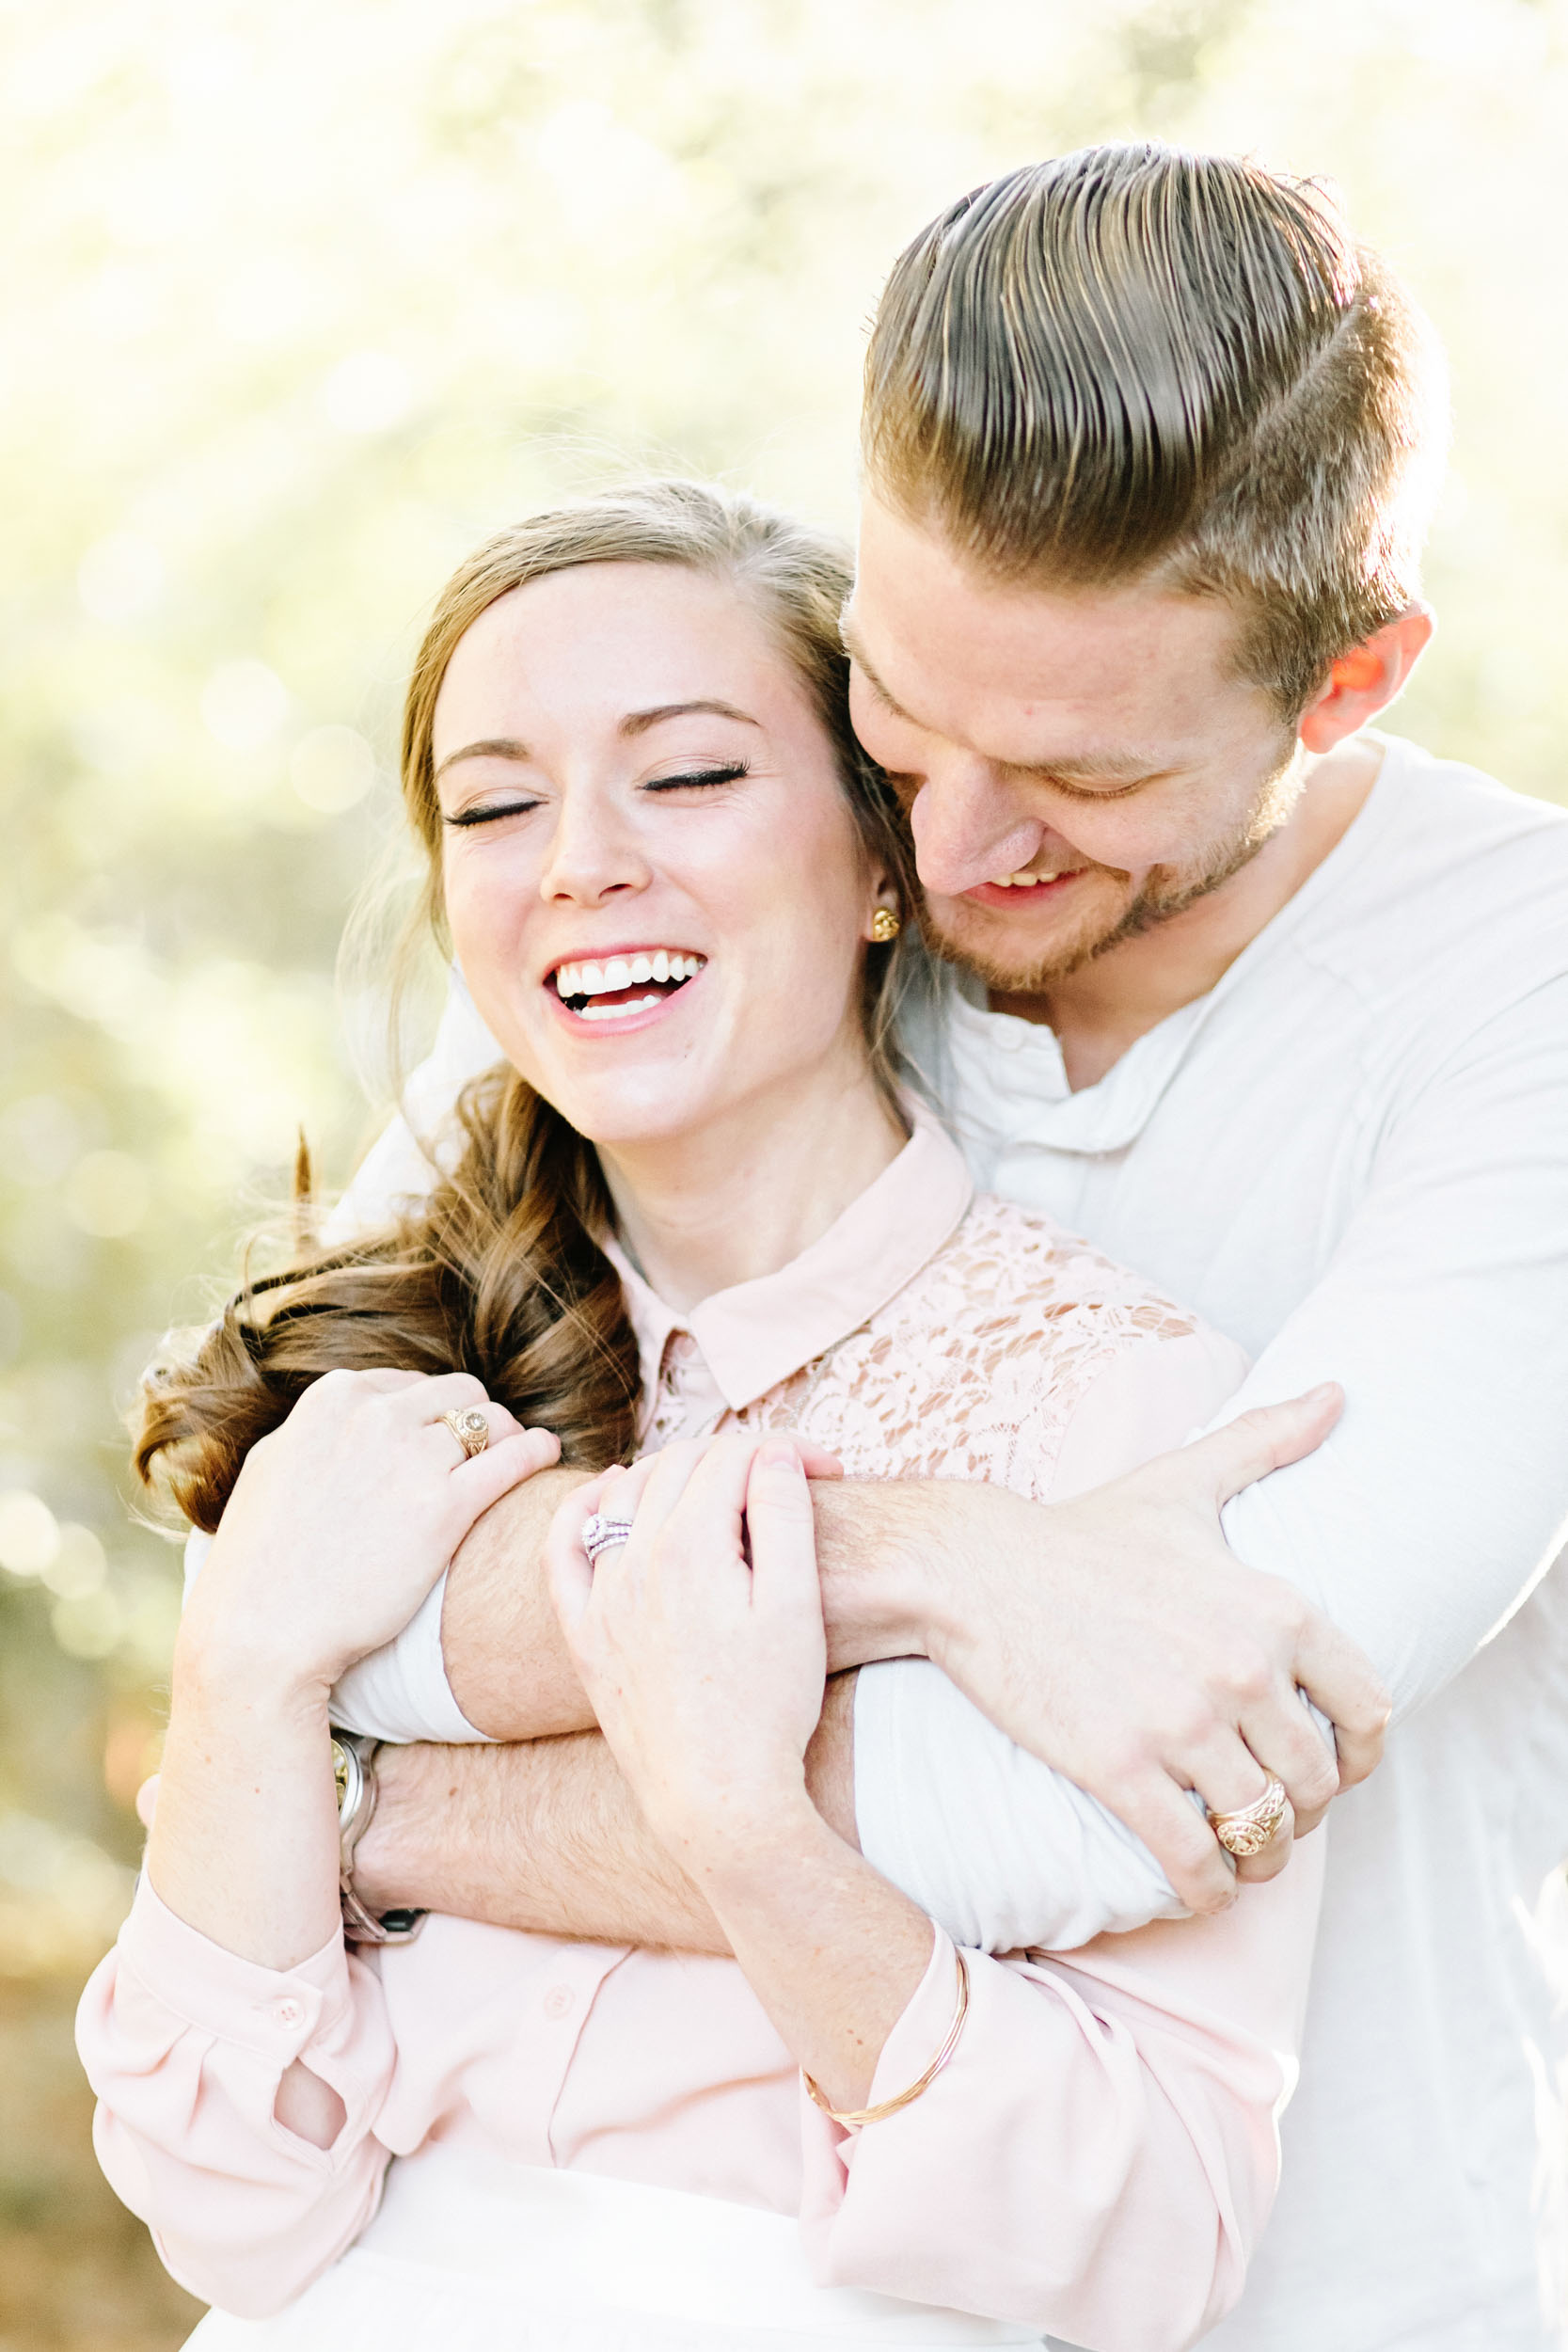 Cassie Schott Photography_Houston and Chicago Portrait Photographer_Engagement Sessions and Anniversary Sessions_1.jpg